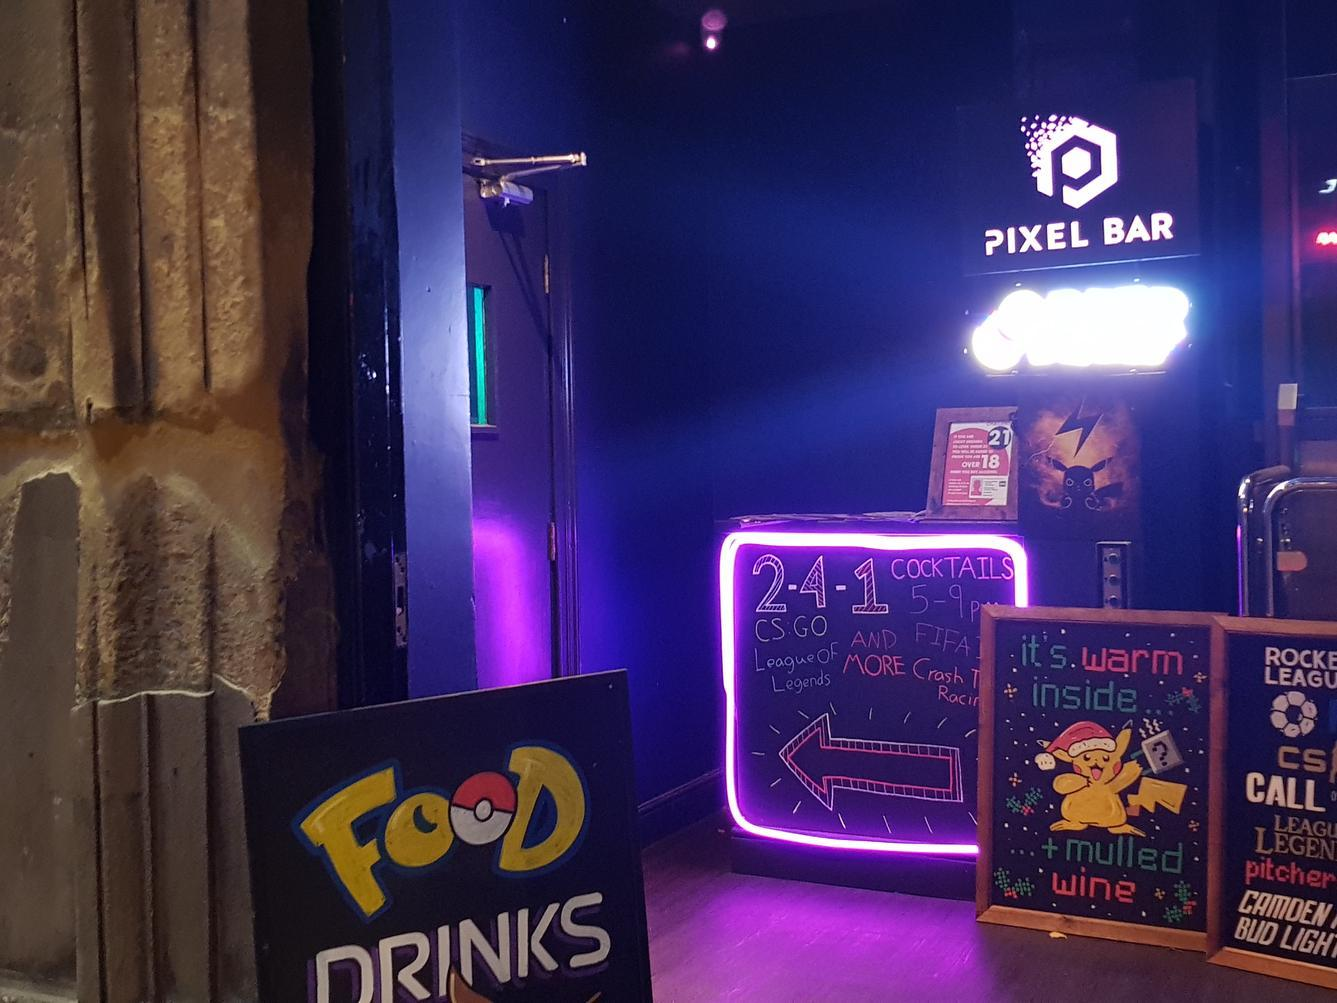 Pixel Bar Review - Leeds' first dedicated gaming bar is a hit with gamers and drinkers alike